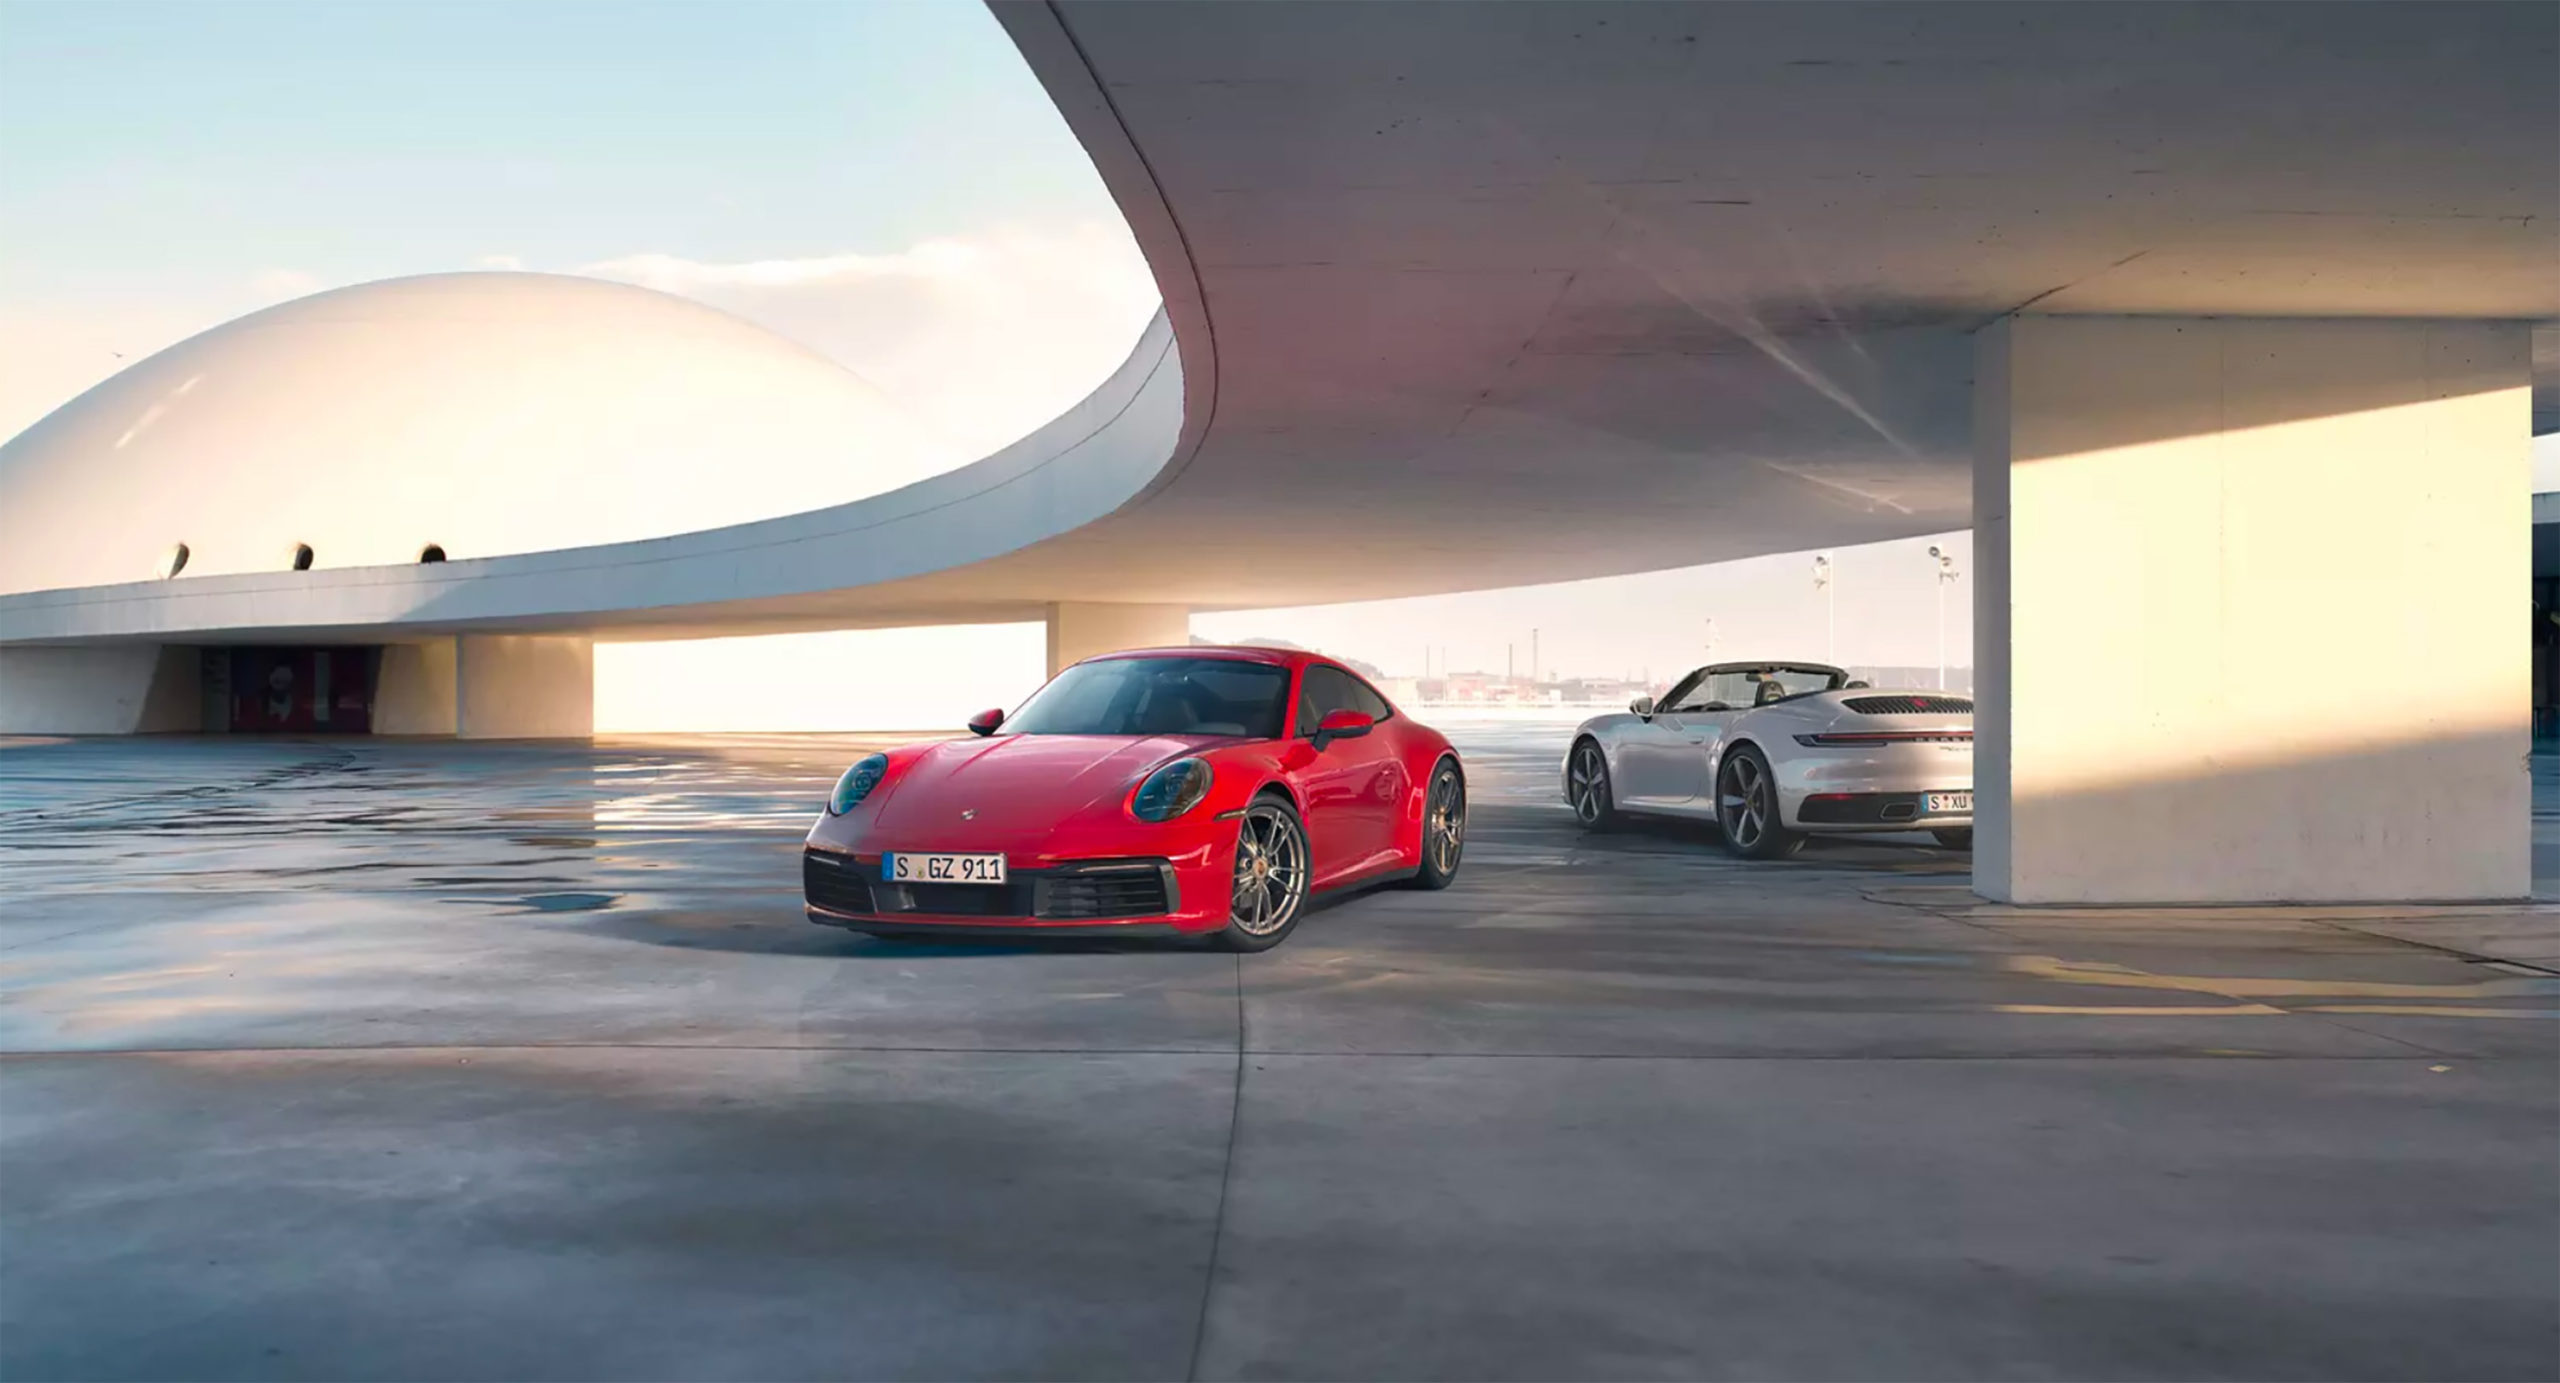 VROOM WITH A VIEW: For this old-car enthusiast, Porsche's new 911 Carrera GTS simply does everything right